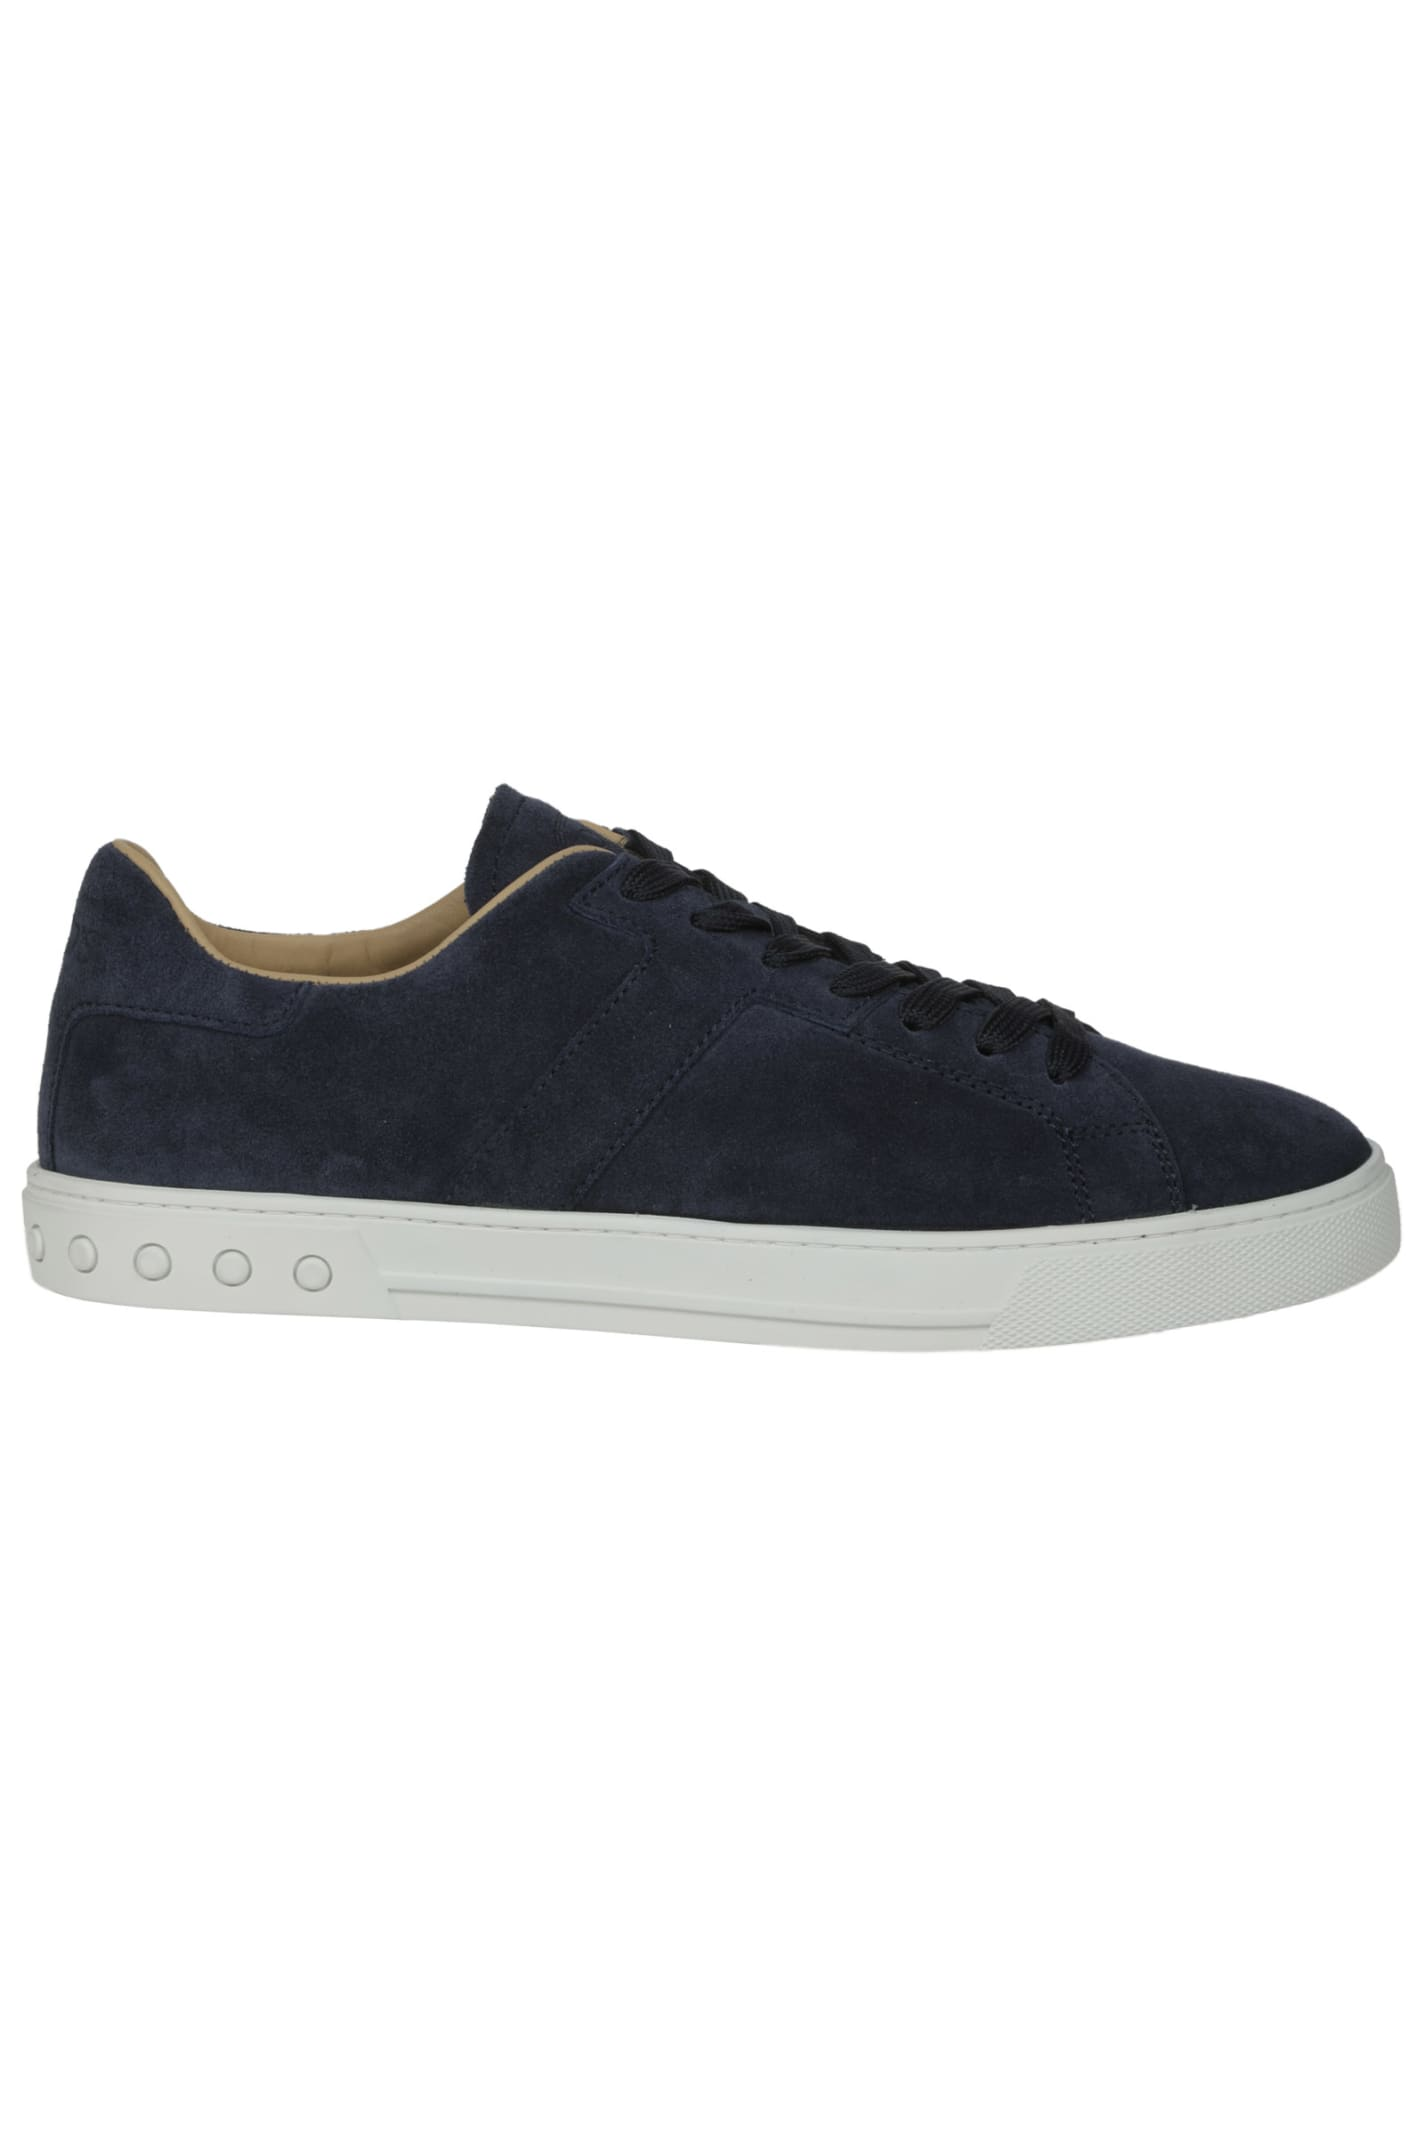 Tods New Sport Sneakers